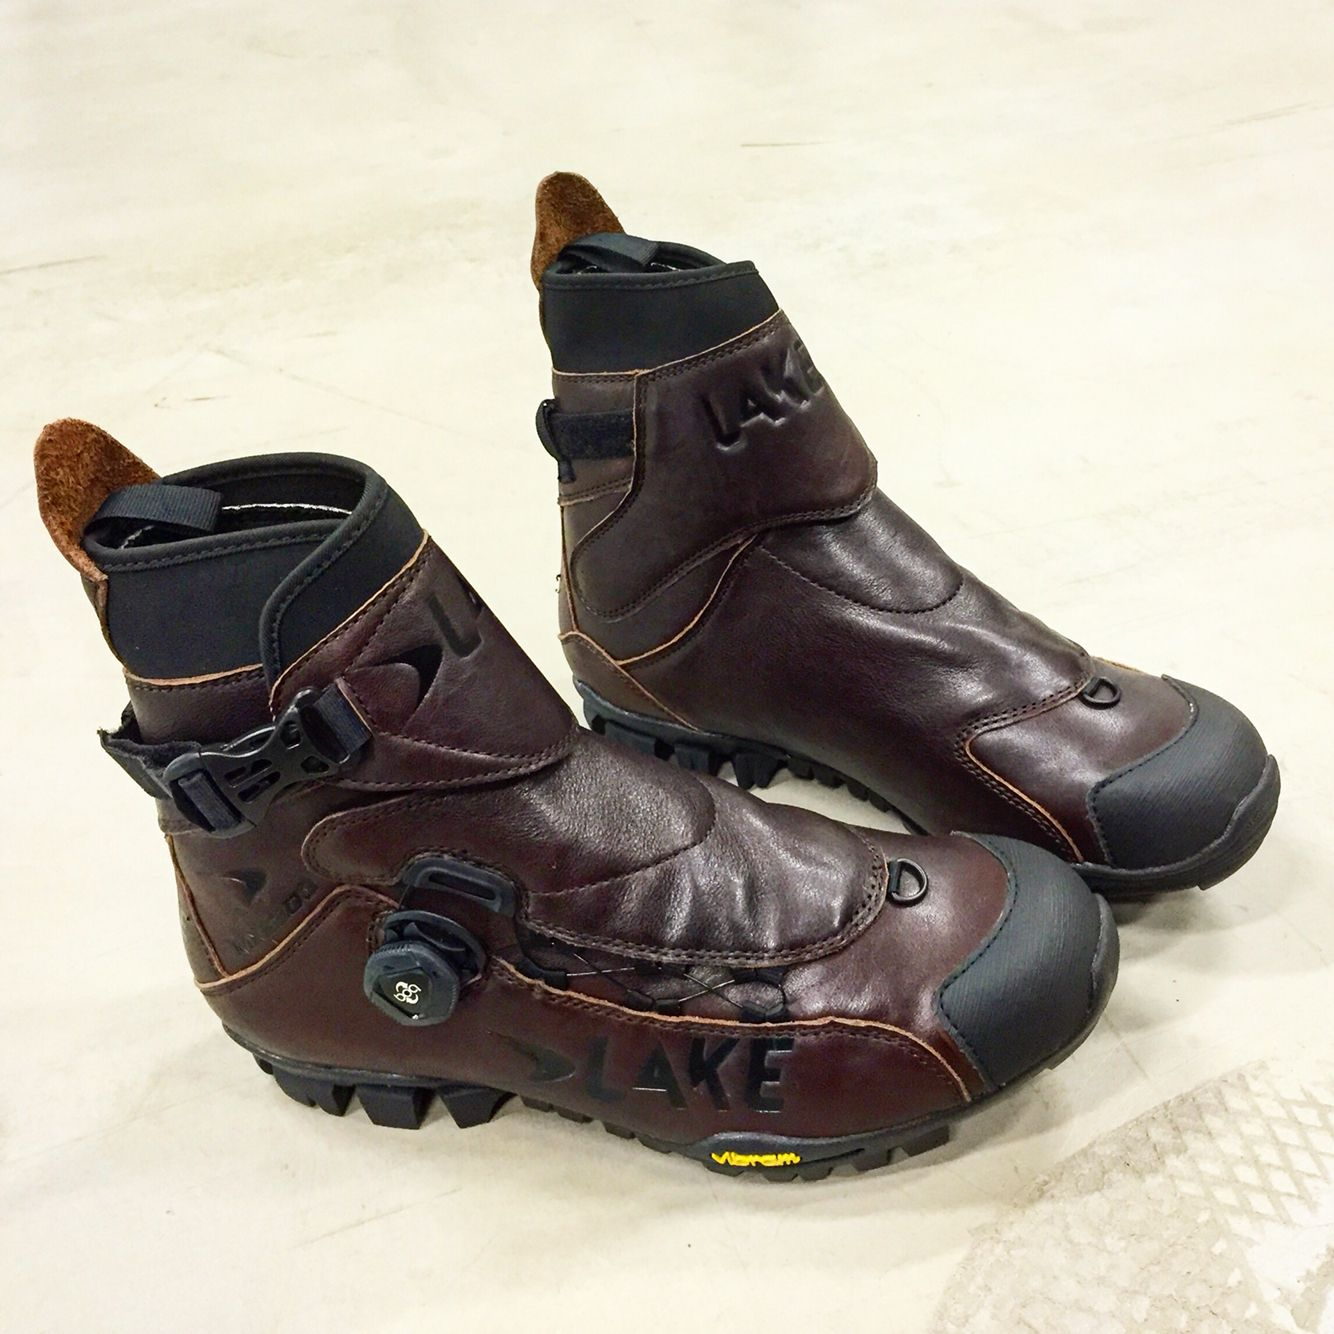 Lake Mxz303 Winter Cycling Shoe All Mountain And Fatbike Winter Mtb Shoes Genuine Leather With Real Vibram Rubber Sole